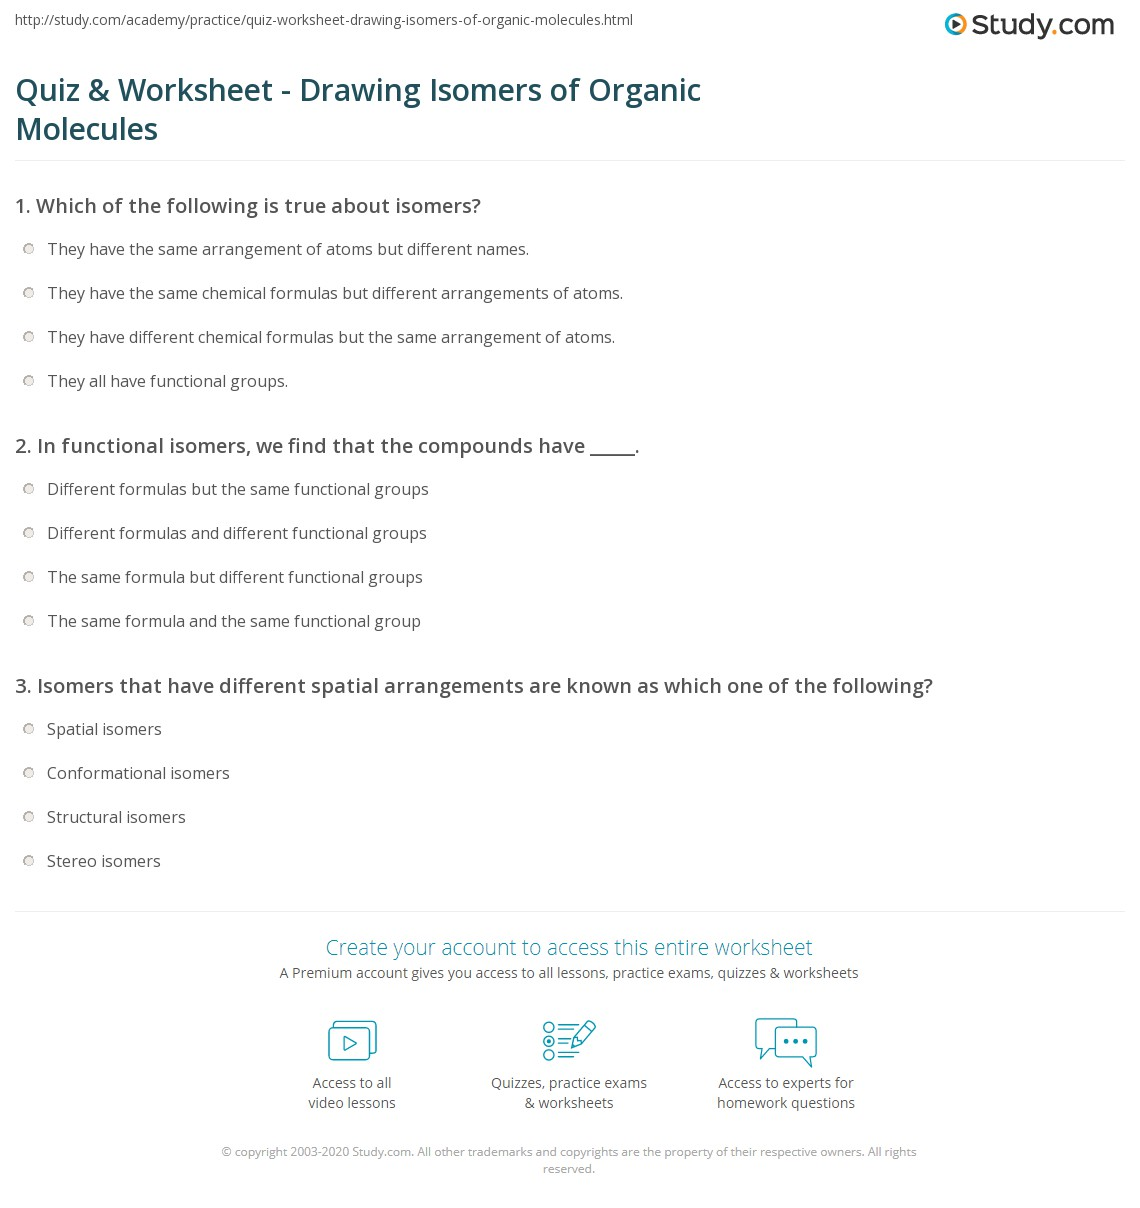 quiz worksheet drawing isomers of organic molecules. Black Bedroom Furniture Sets. Home Design Ideas